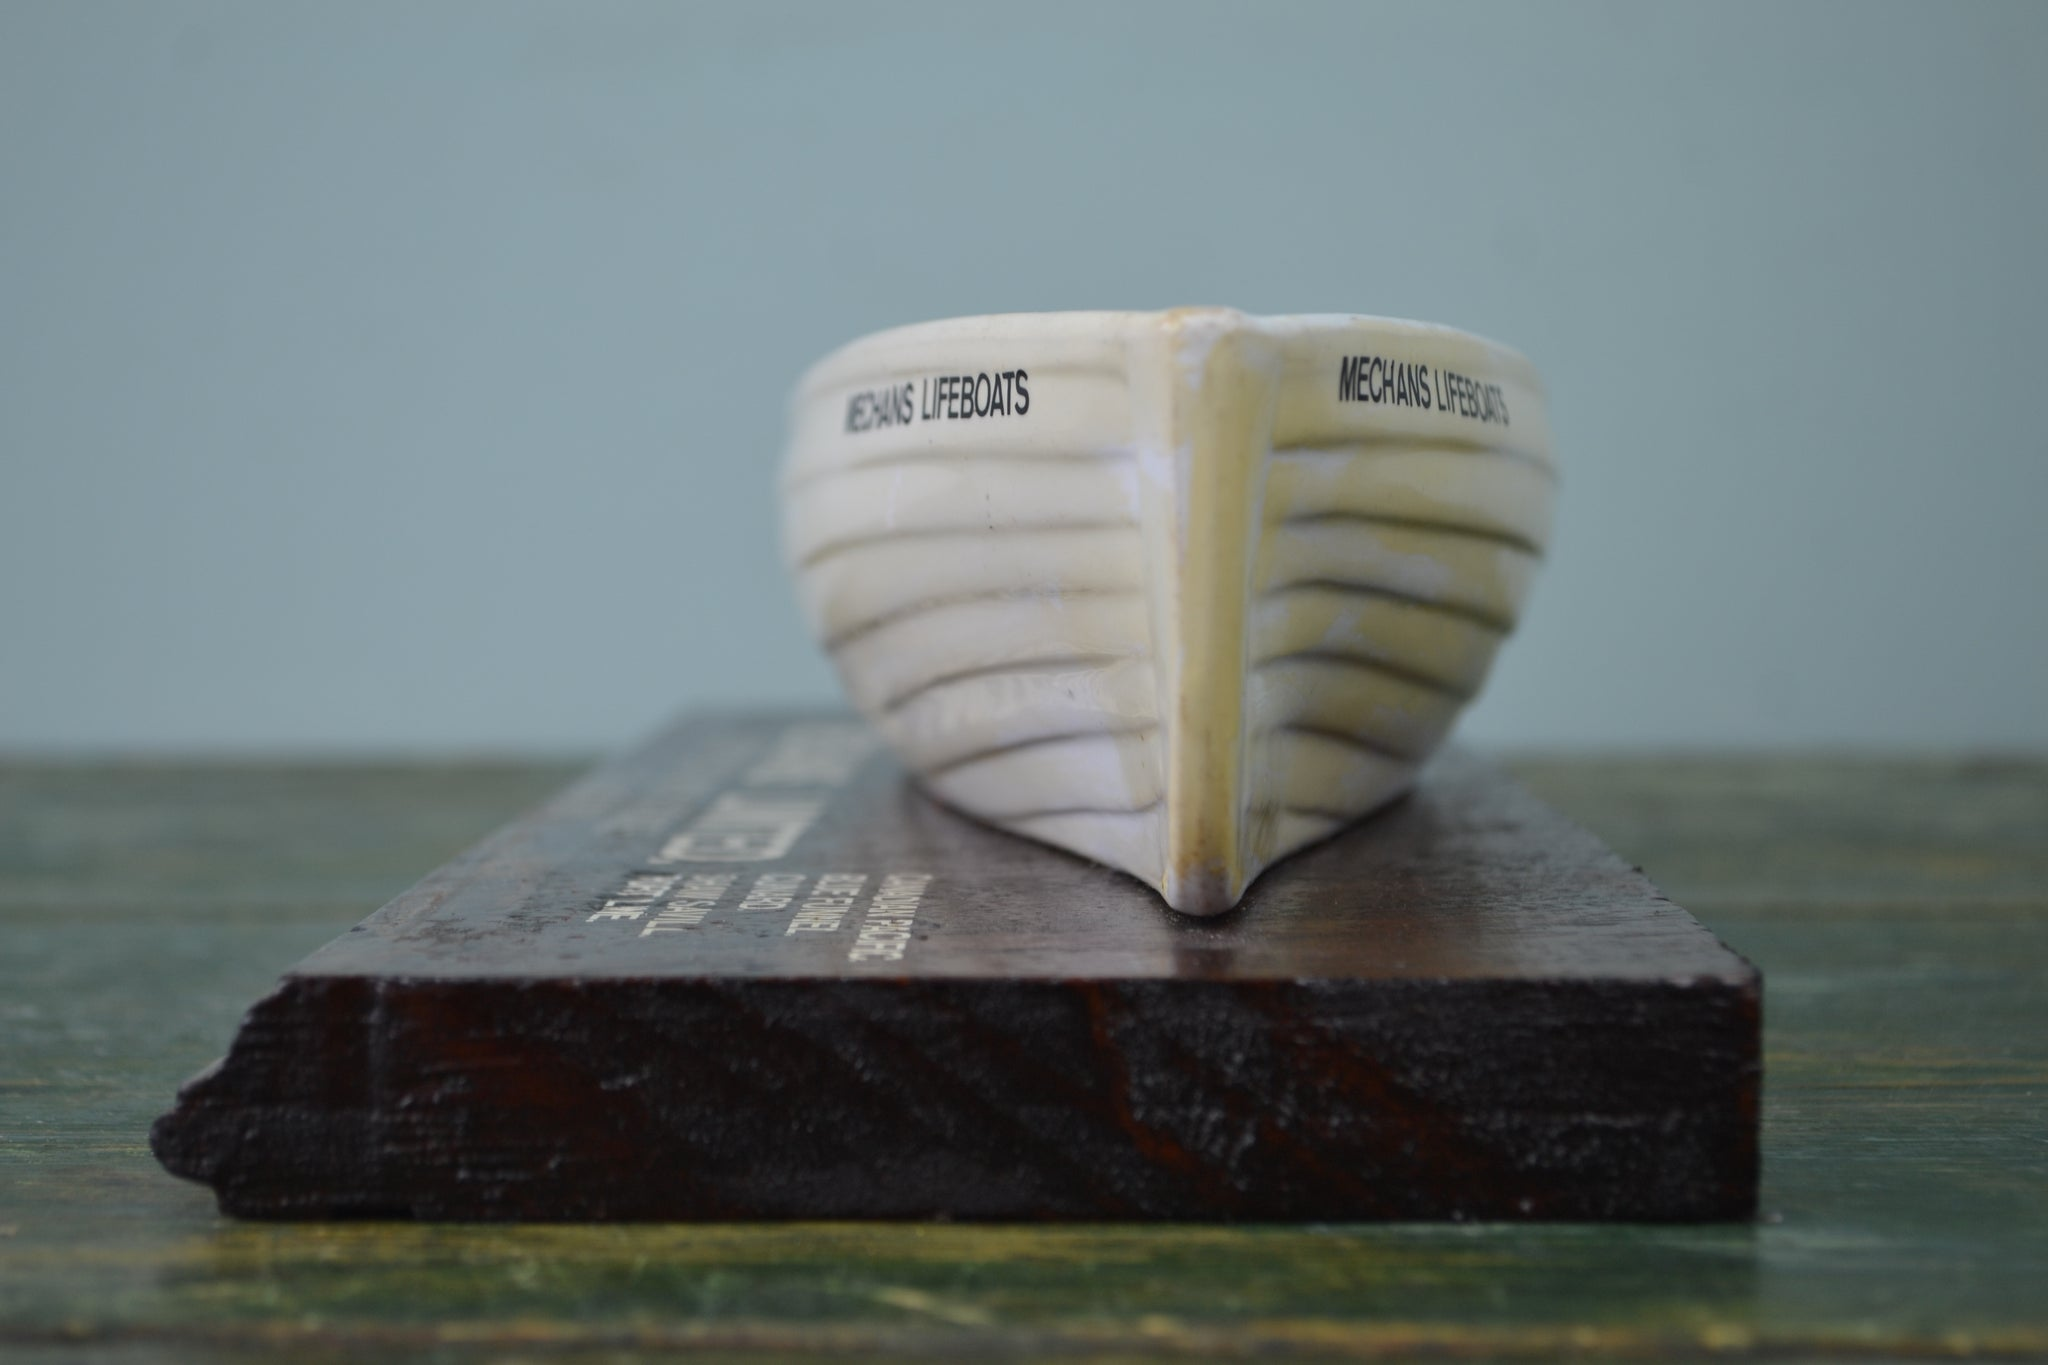 Mechans Ltd. white ironstone pottery Lifeboat